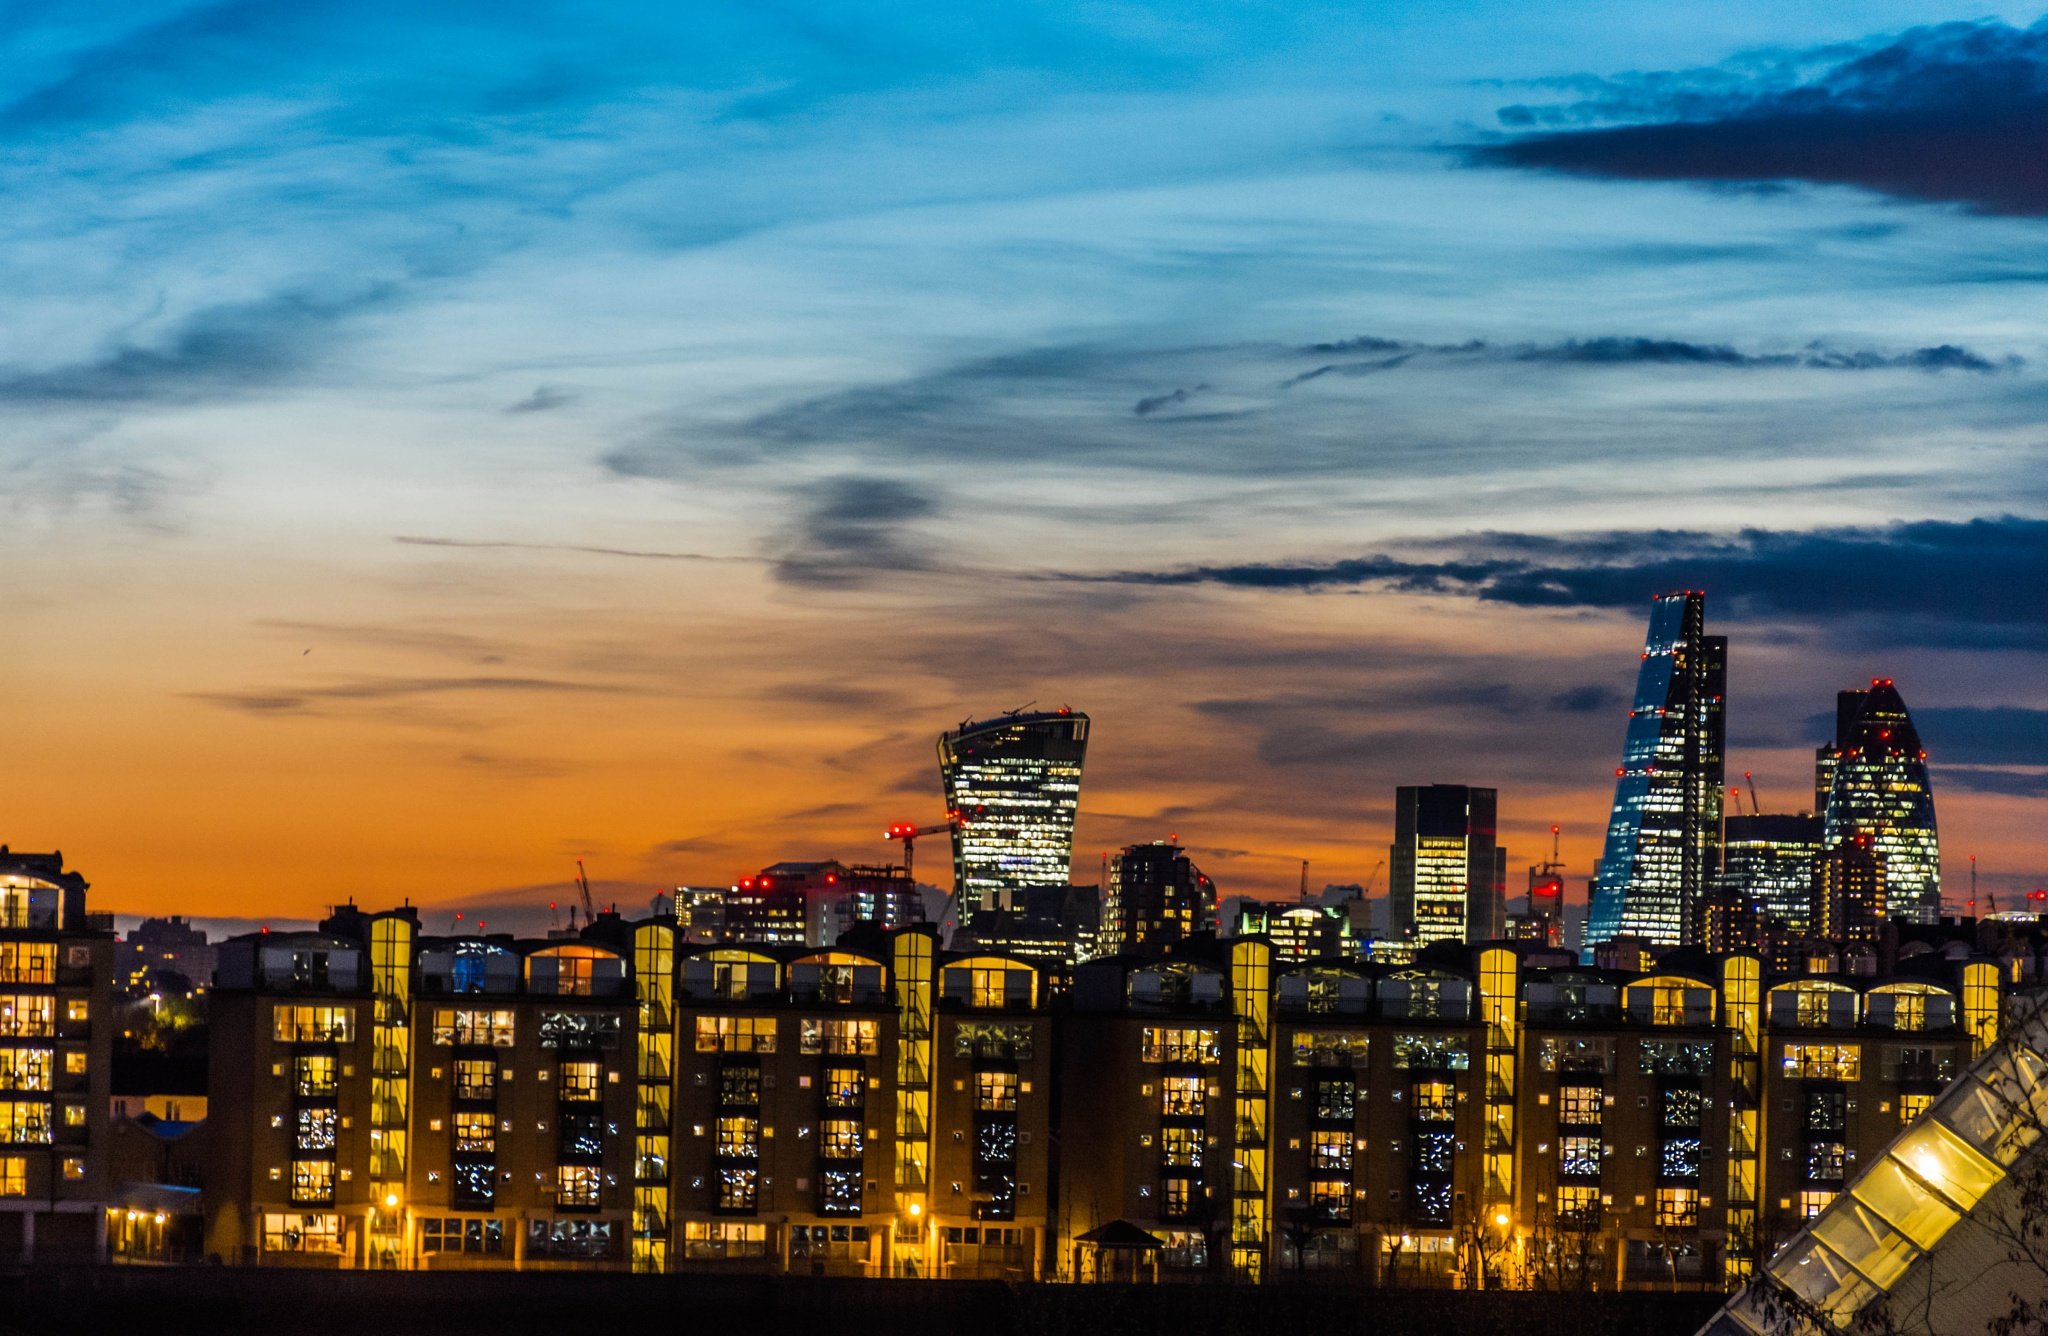 View from My Balcony....END OF THE DAY......meeting of day light with Darkness by Dowshik